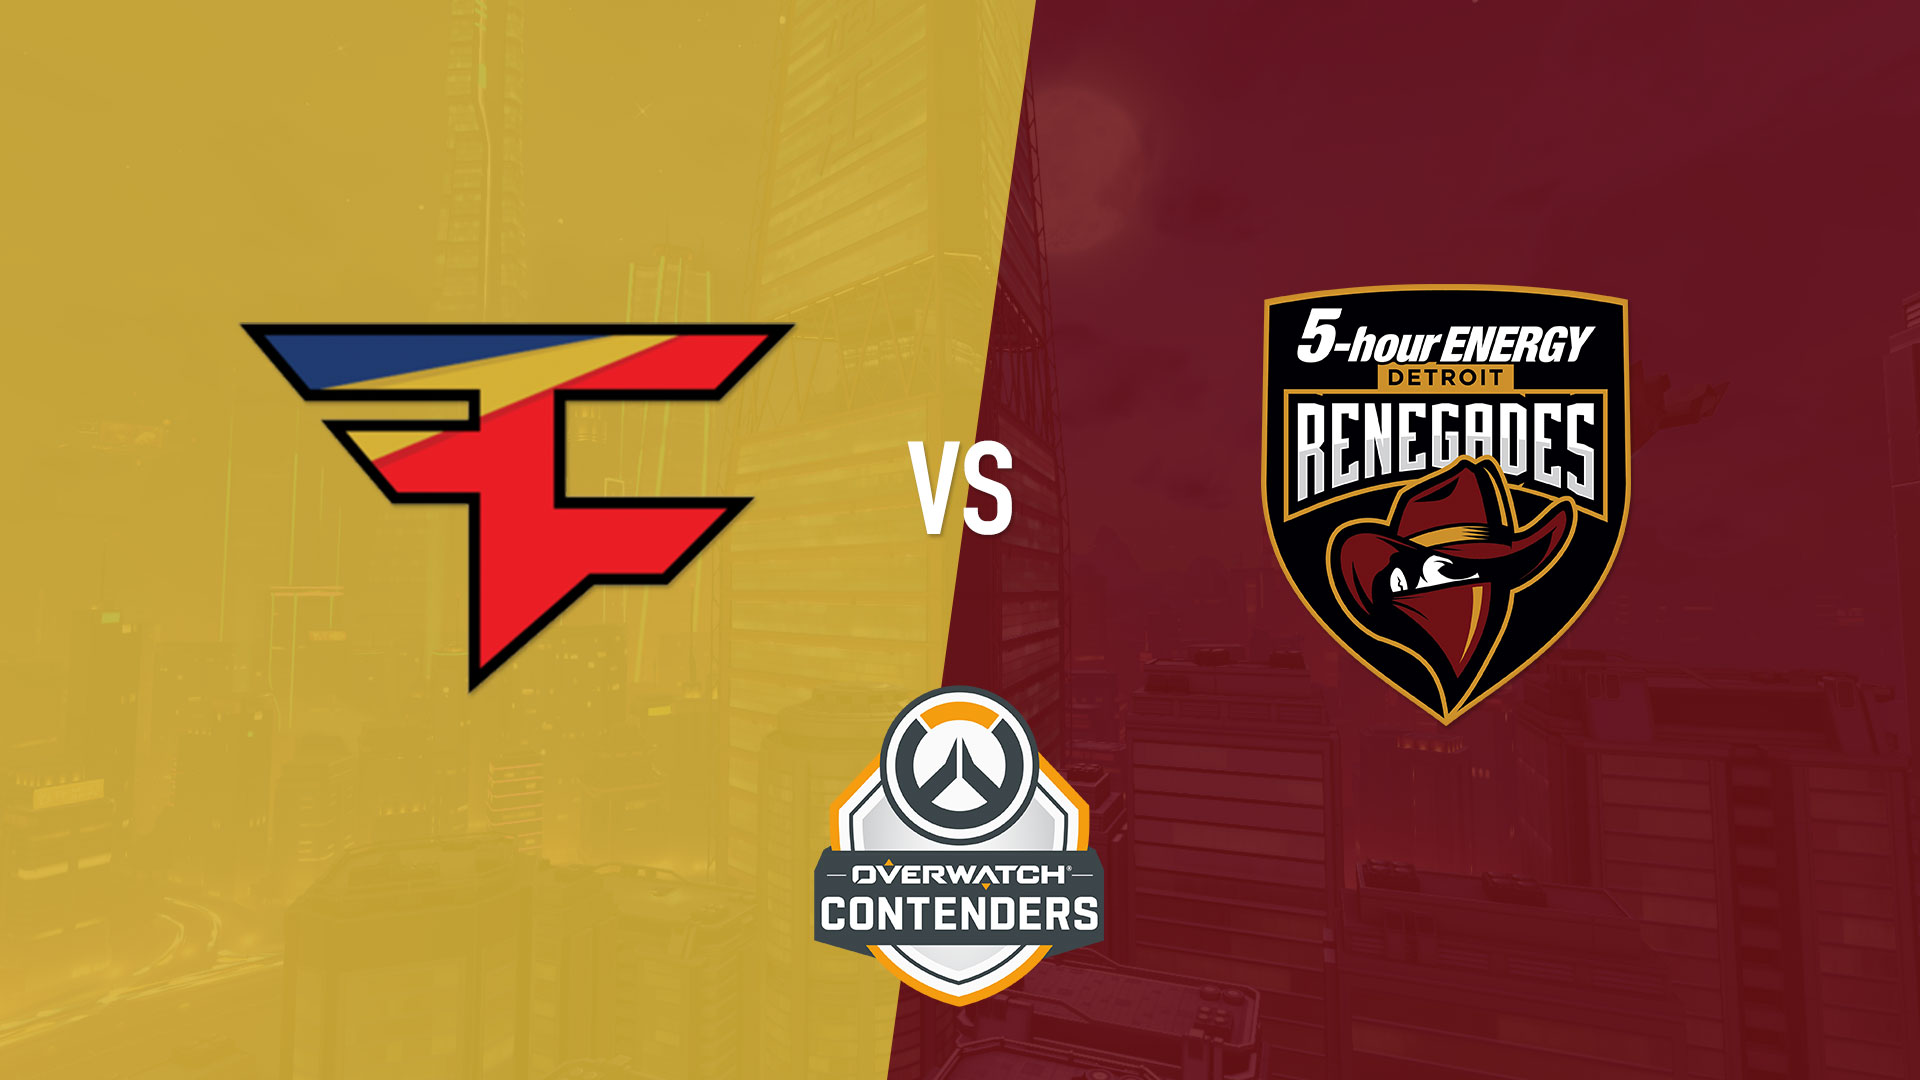 Mlg video overwatch contenders season 1 faze clan vs envision overwatch contenders season 1 faze clan vs detroit renegades buycottarizona